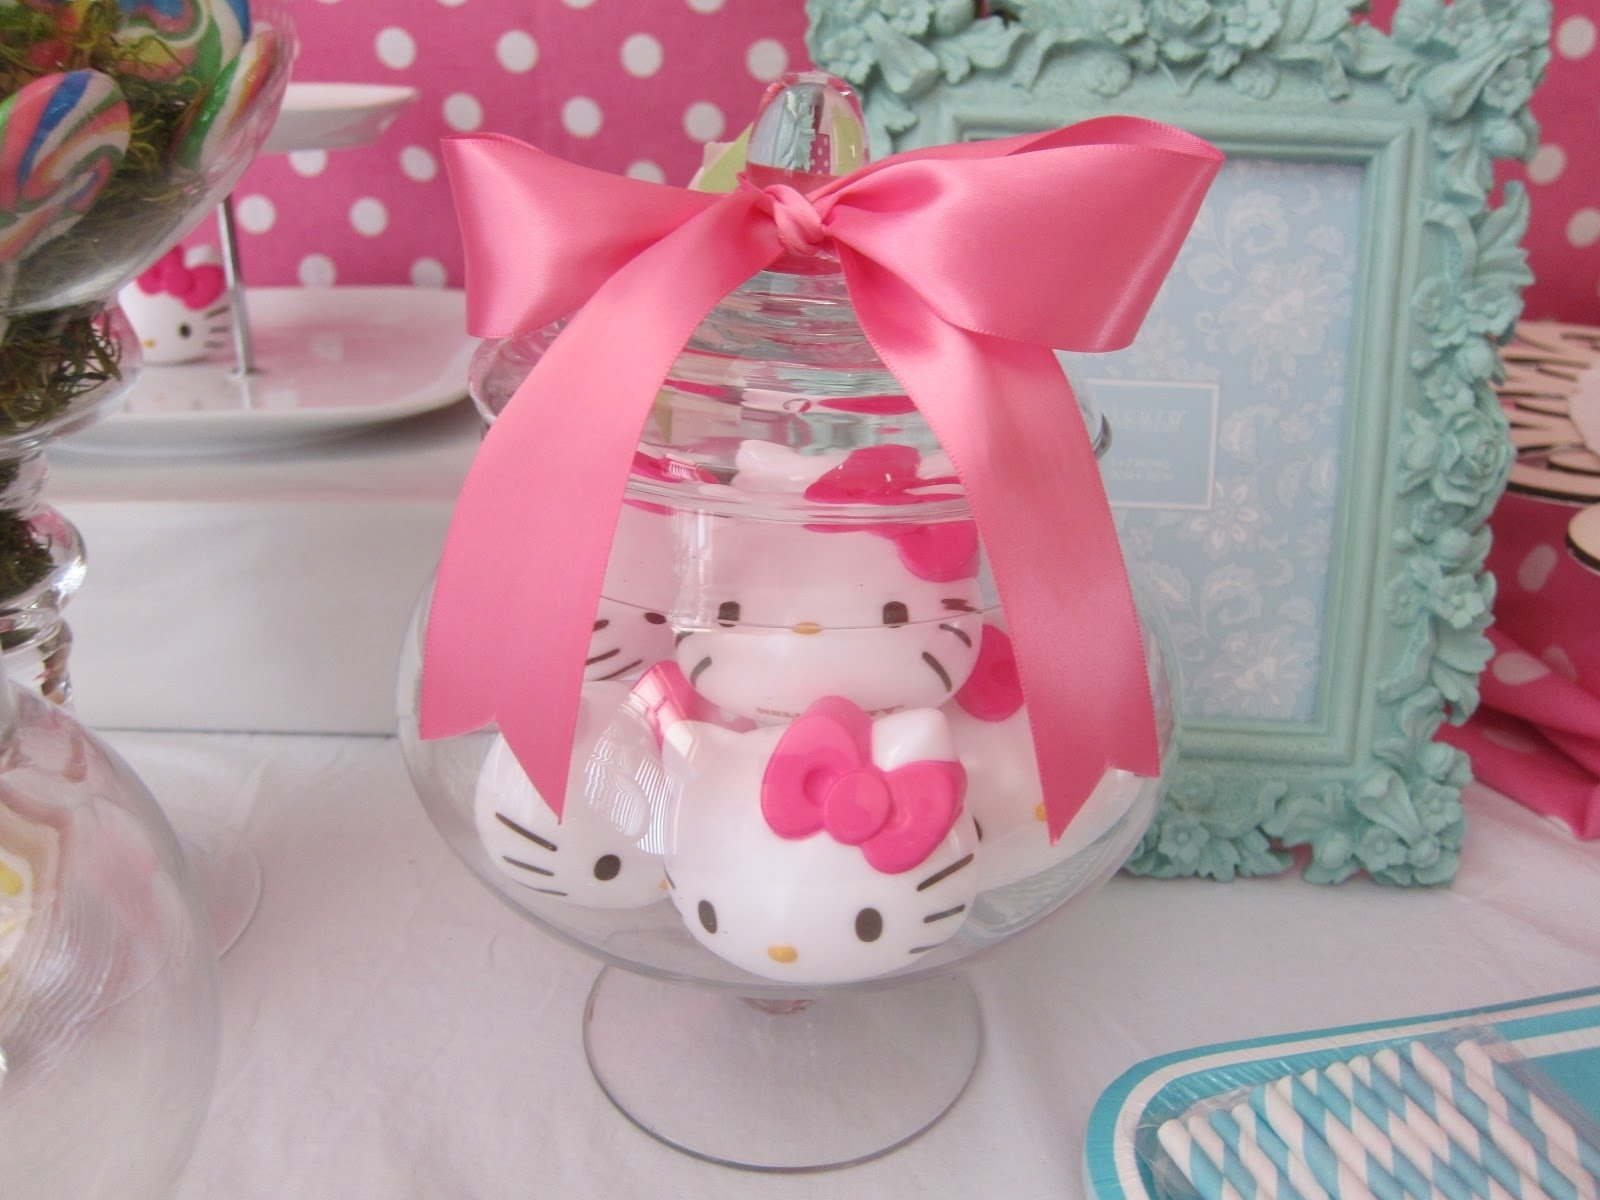 10 Lovable Hello Kitty Party Favor Ideas hello kitty centerpieces ideas for baby shower hello kitty diy party 2 2020